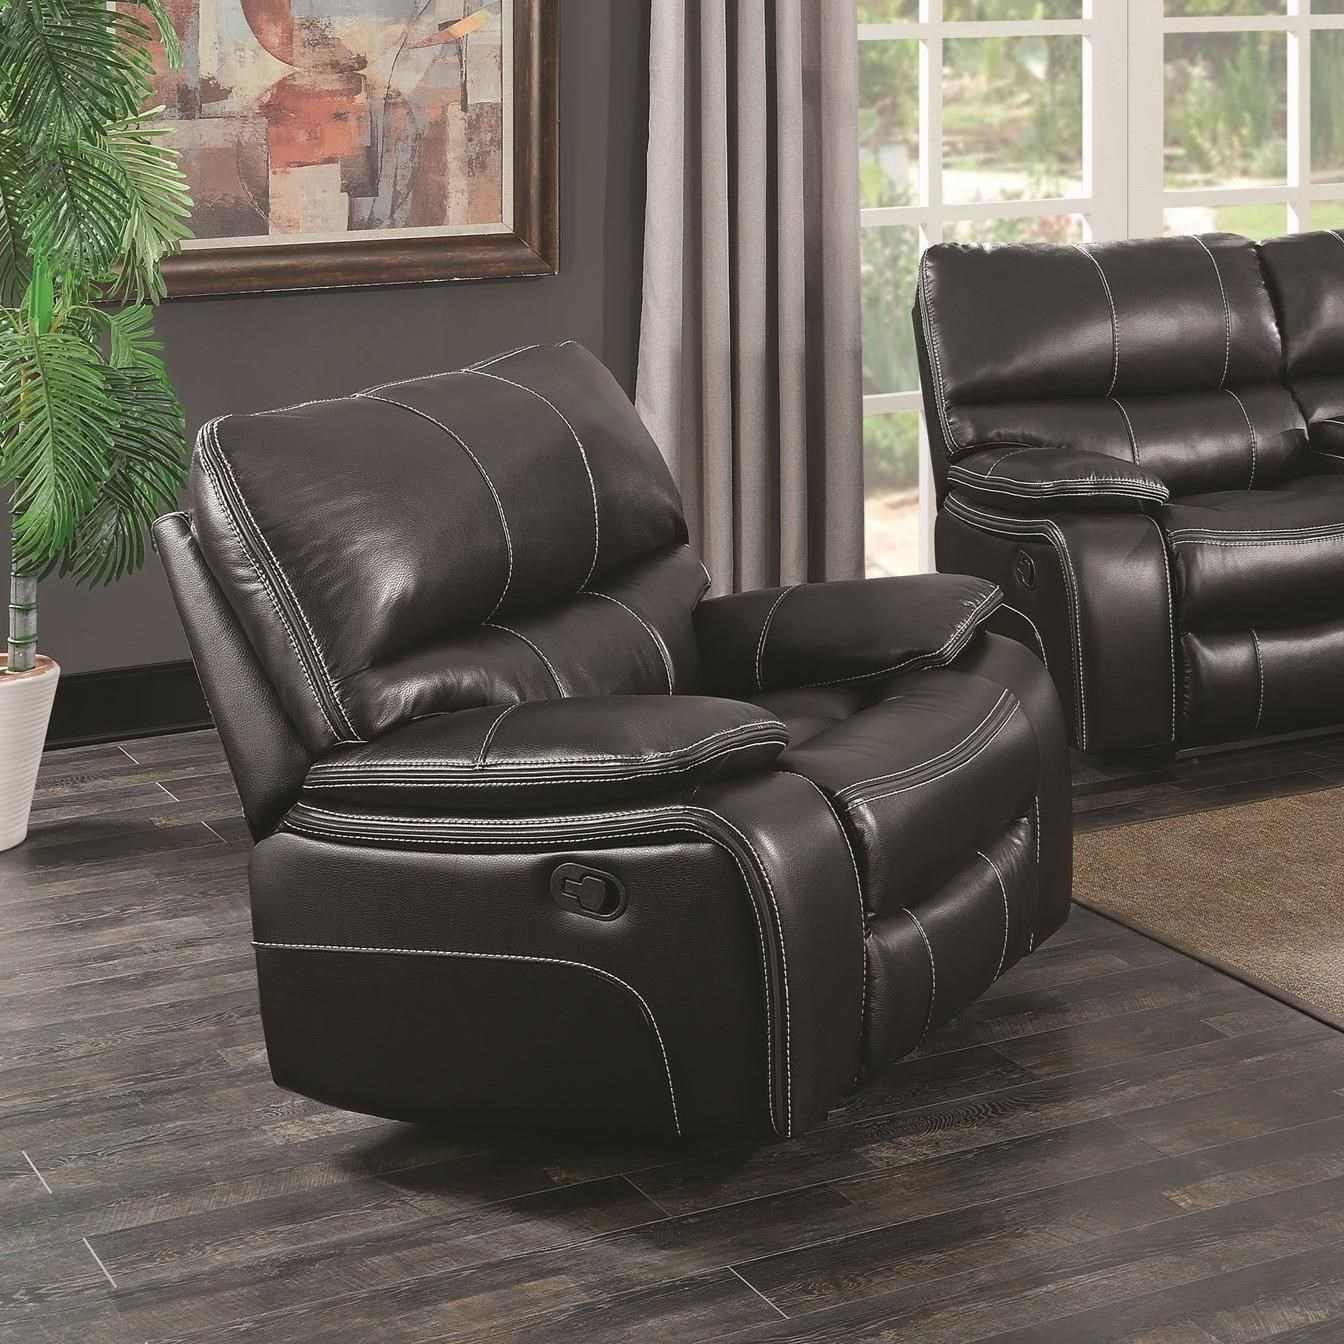 Coaster Willemse Casual Glider Recliner With Lumbar